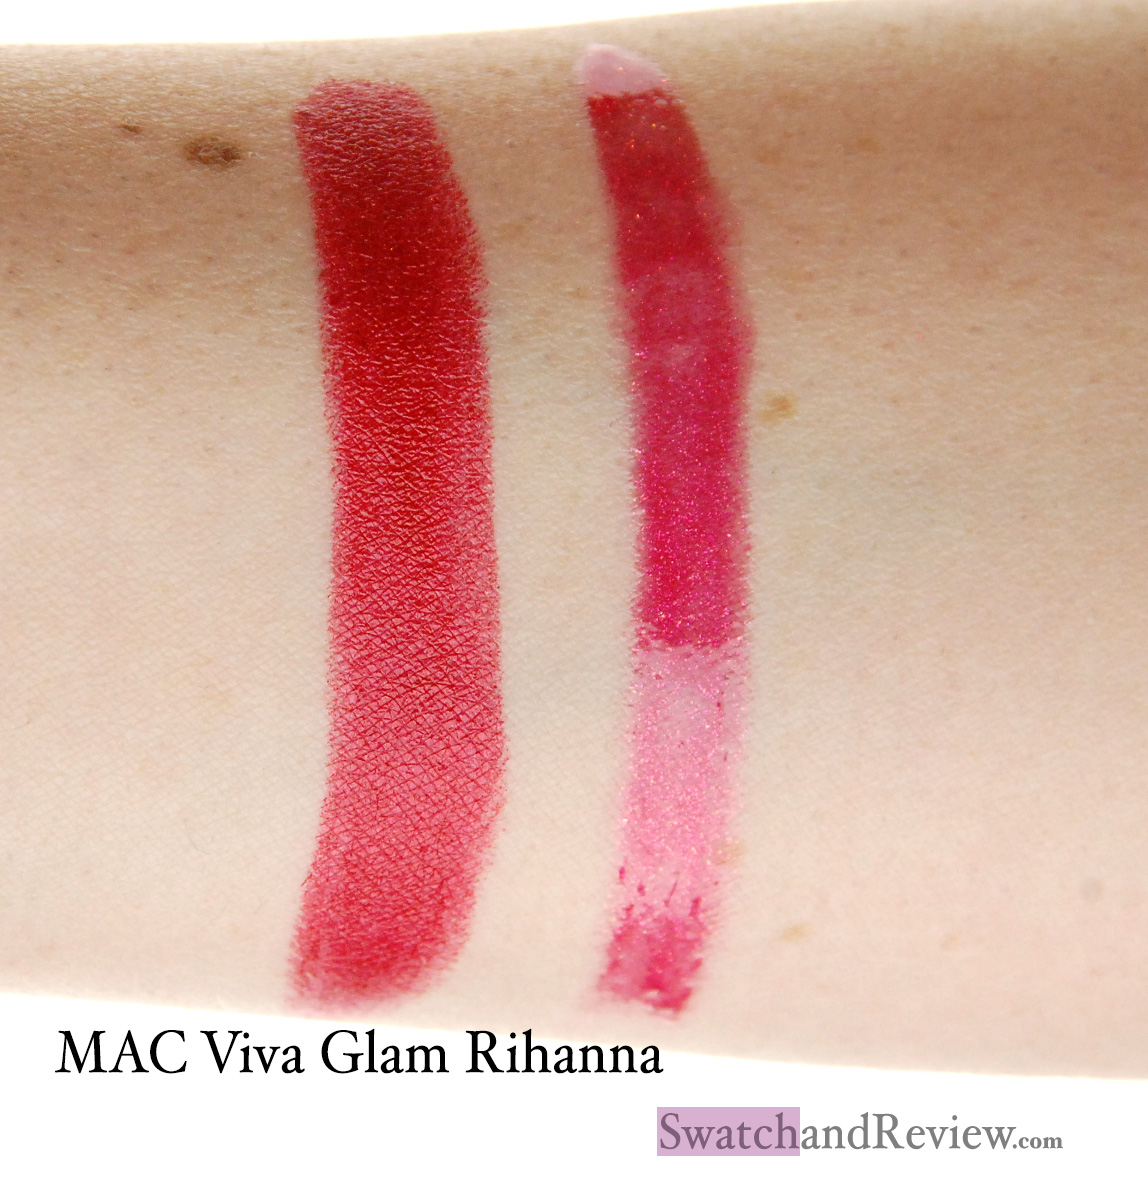 MAC Viva Glam Rihanna lipstick and lipglass review ...